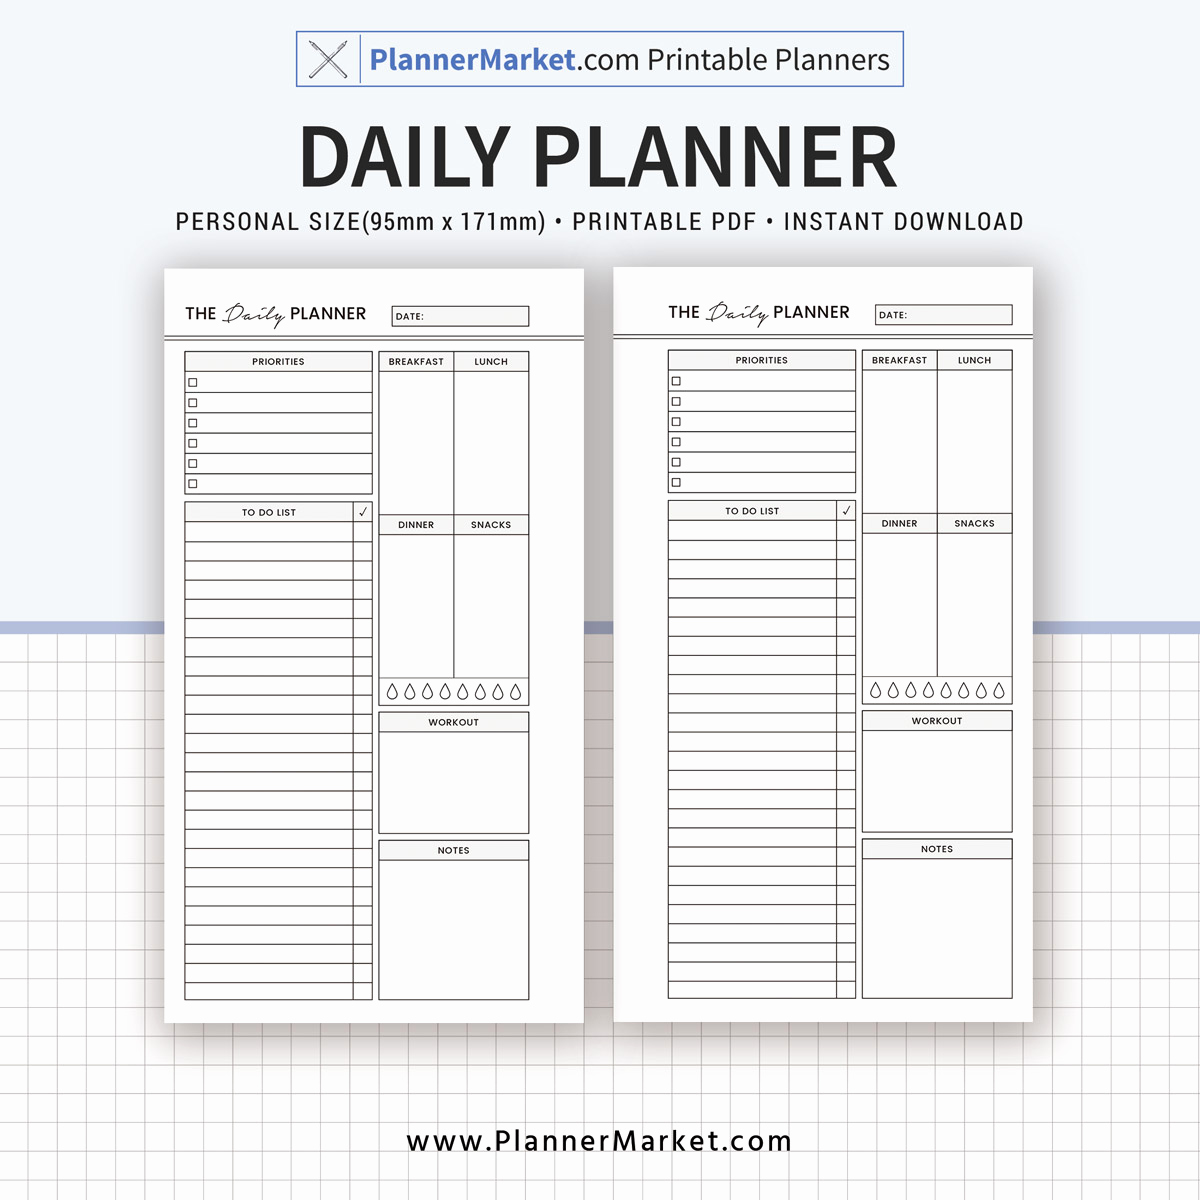 Daily Planner Printable Pdf Best Of Daily Planner 2019 Planner Personal Size Inserts